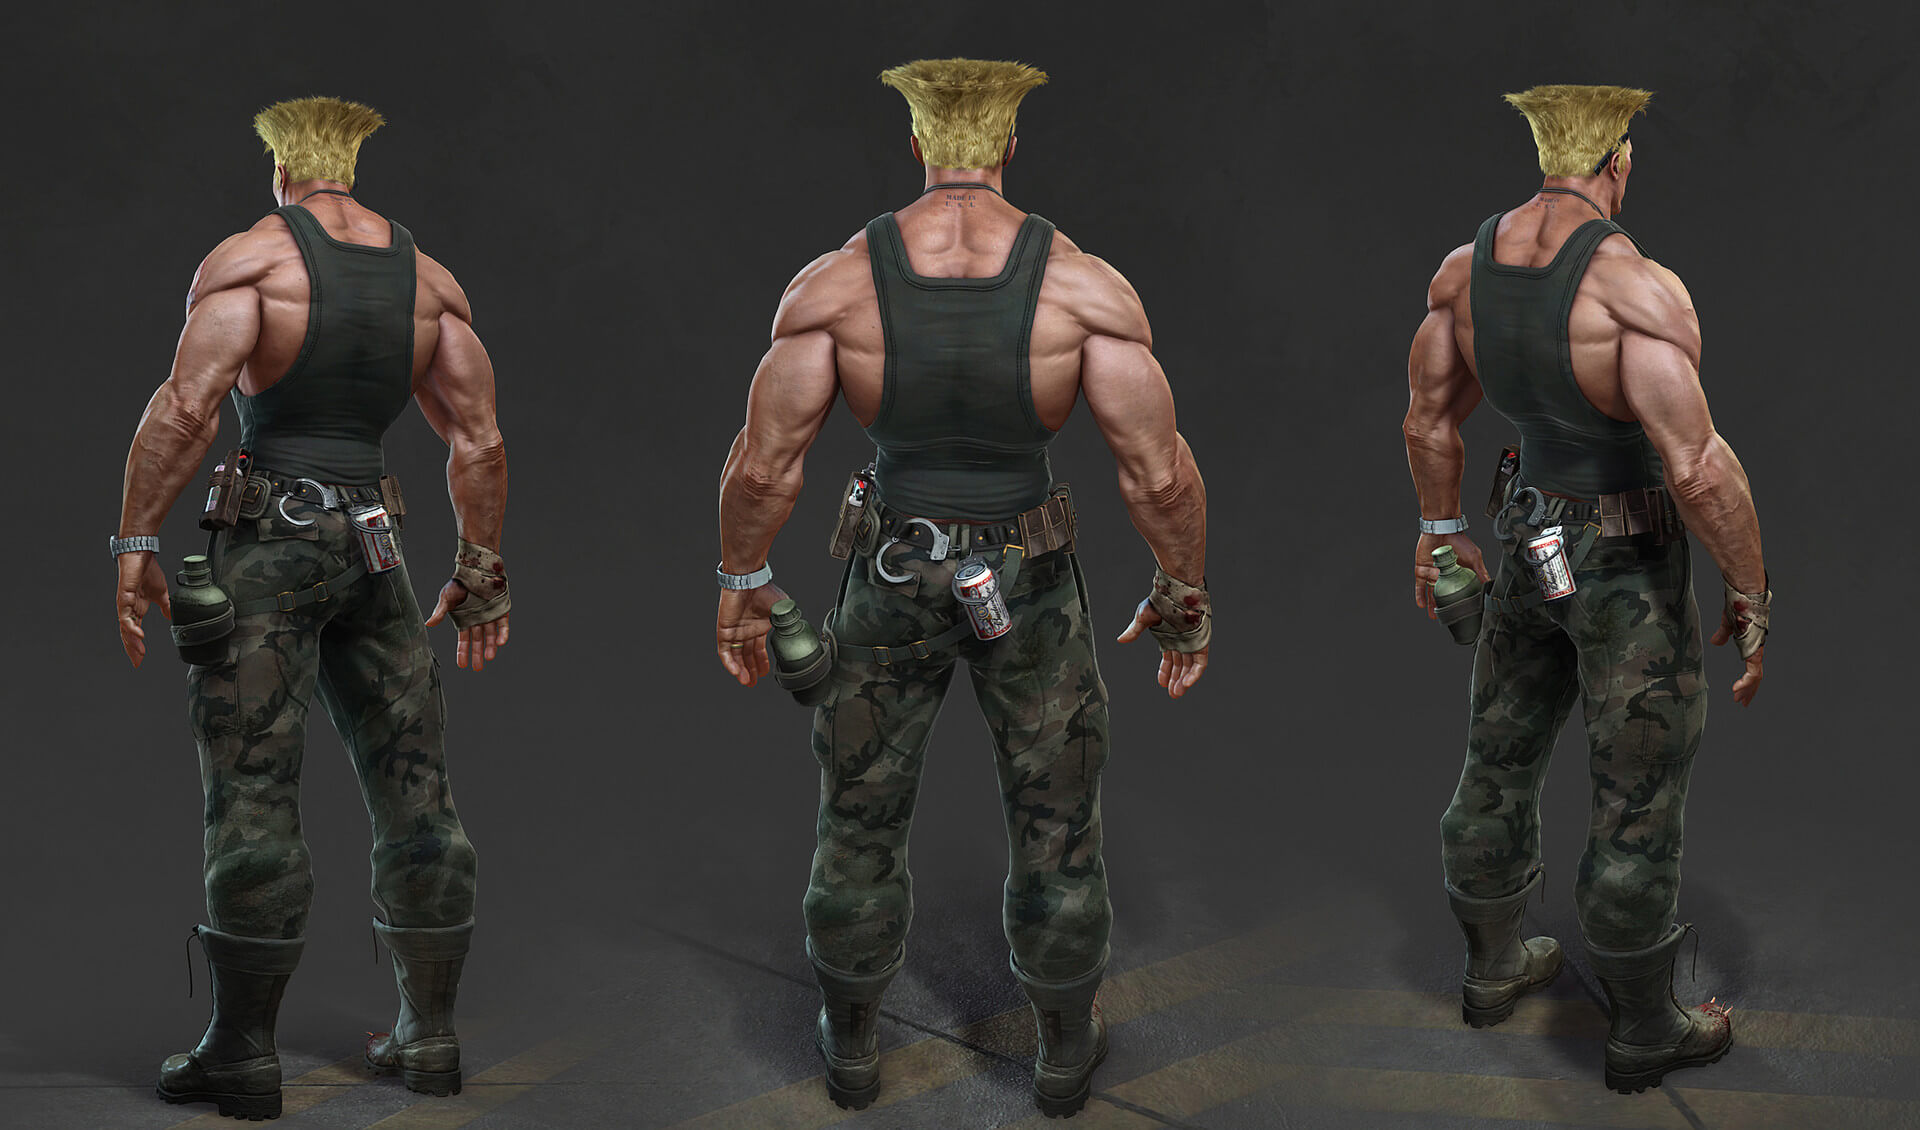 mike-kime-guile-cghub-2.jpg